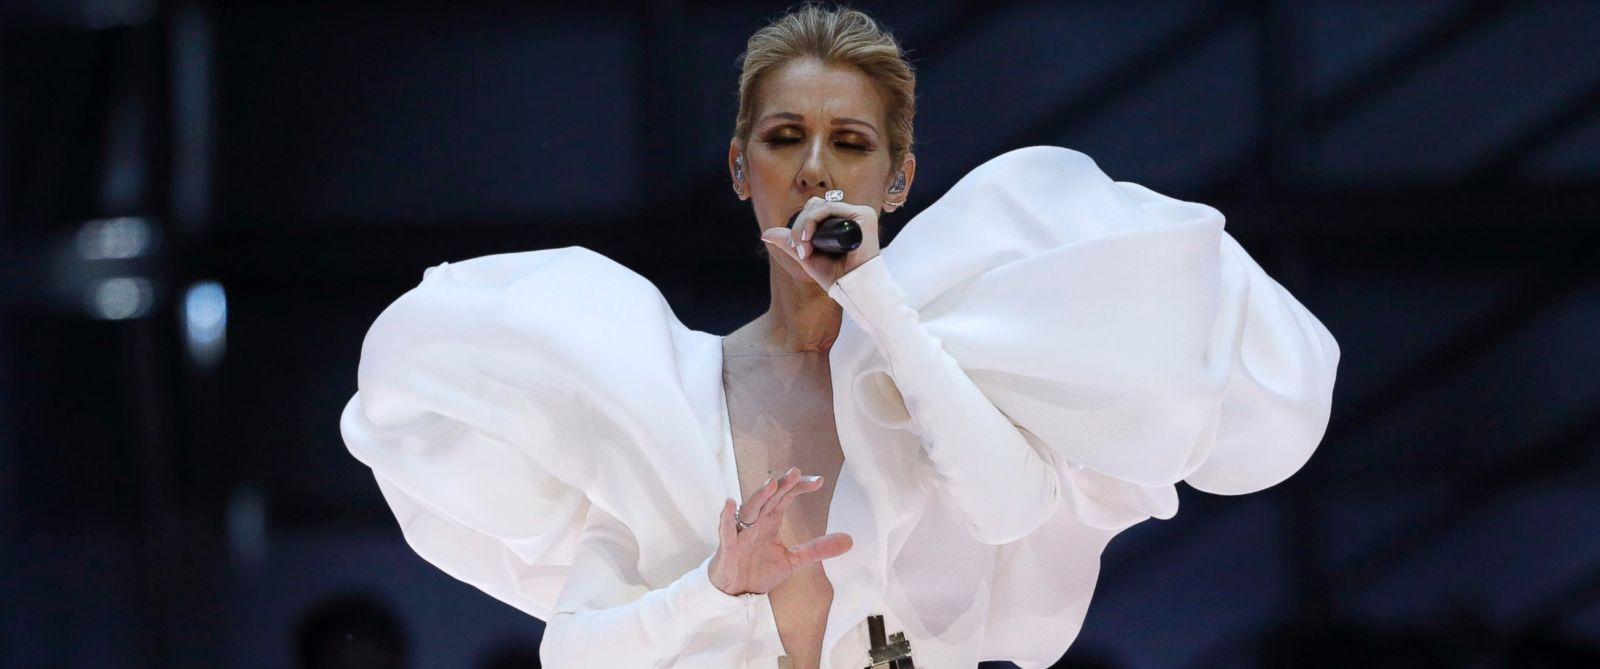 Celine Dion gives emotional performance of My Heart Will Go On